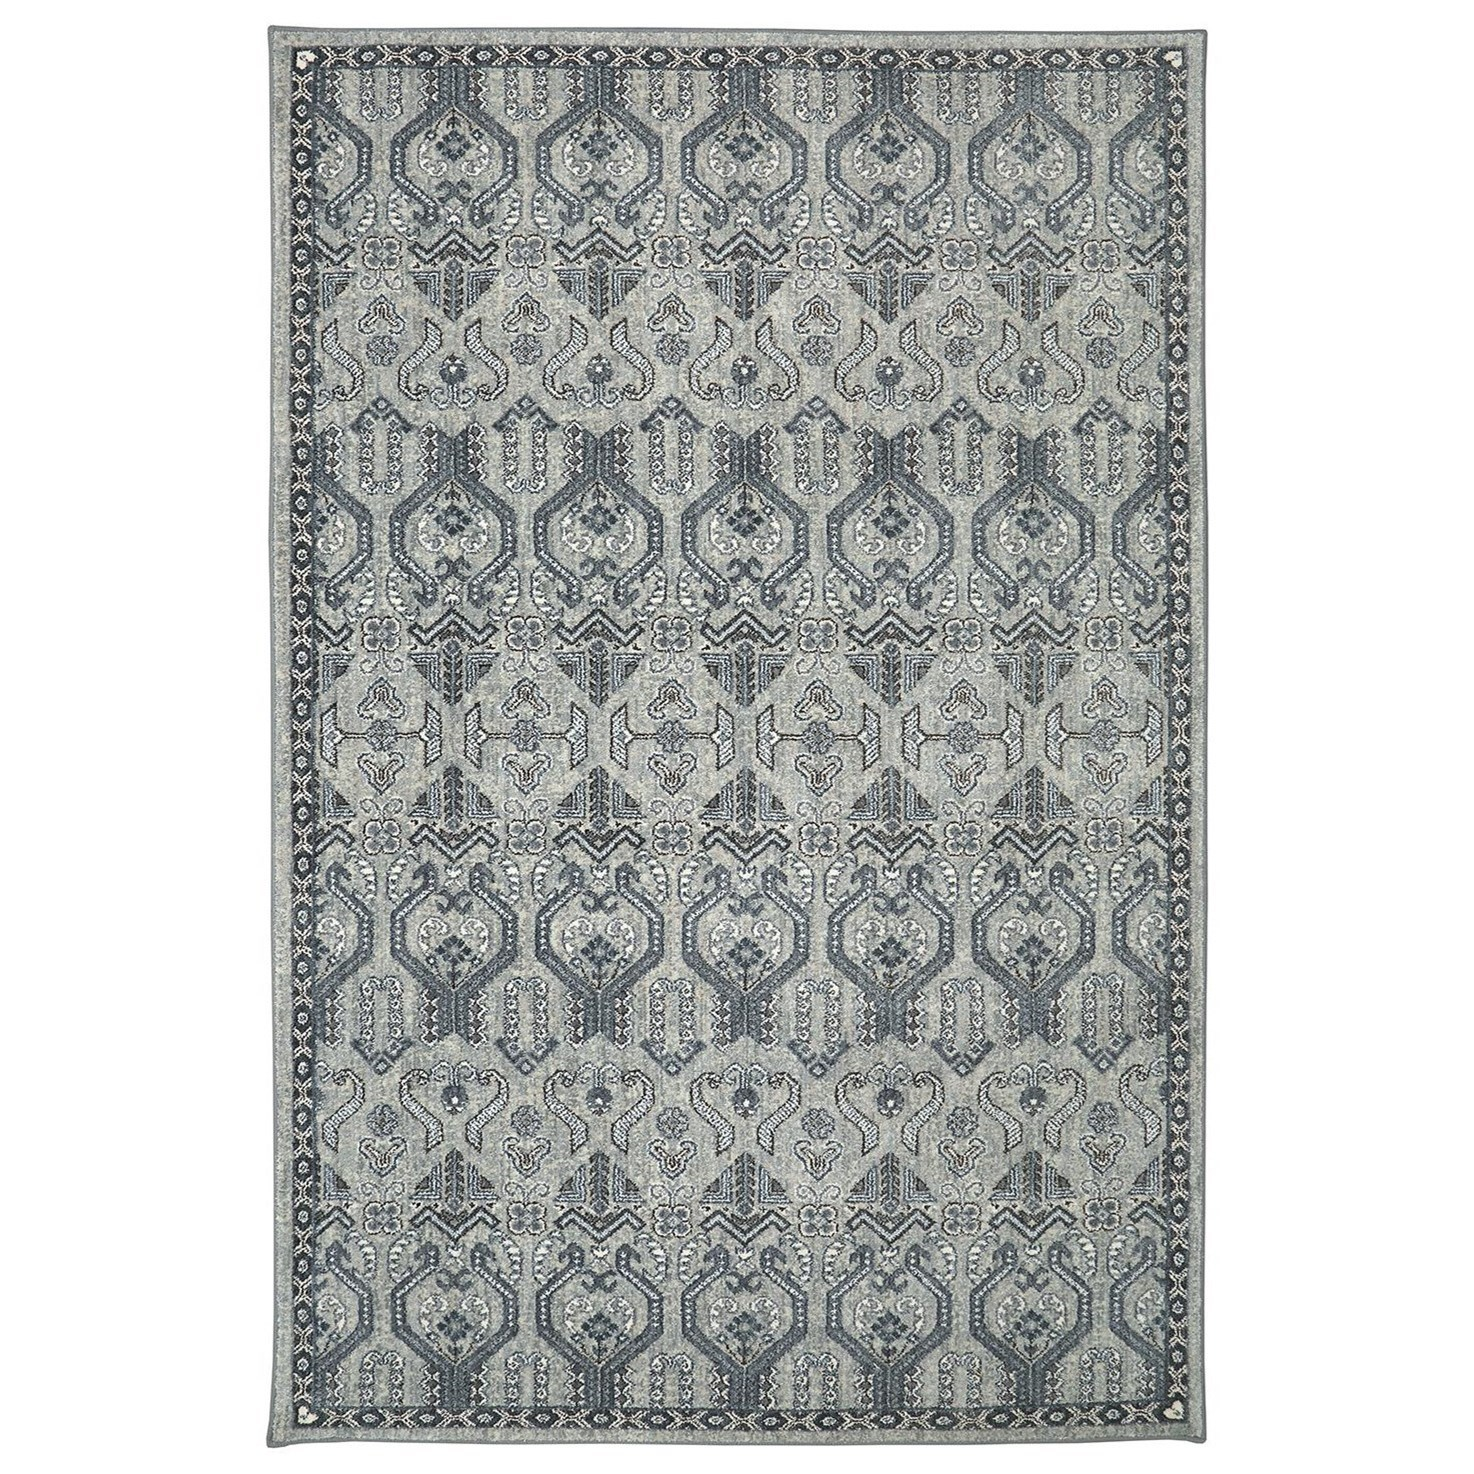 Karastan Rugs Euphoria 5'3x7'10 Castine Willow Grey Rug - Item Number: 90646 90075 063094